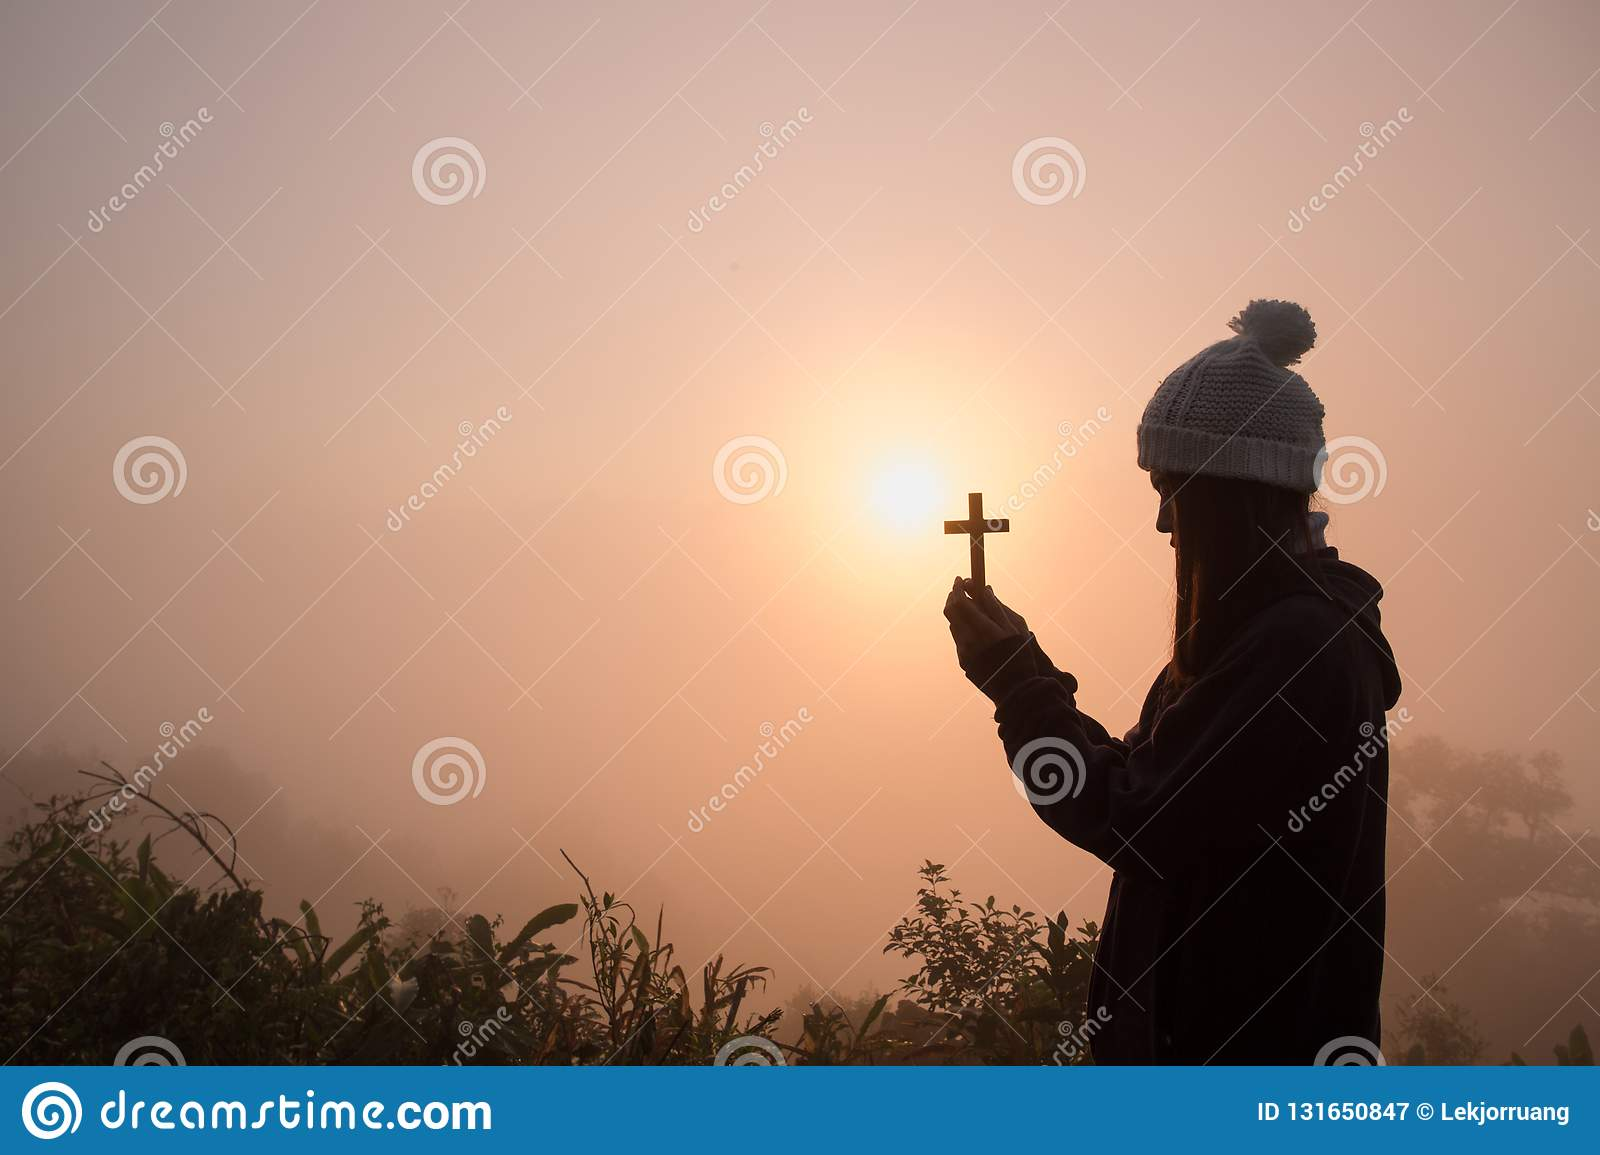 Silhouette of young woman praying with a cross at sunrise, Christian Religion concept background